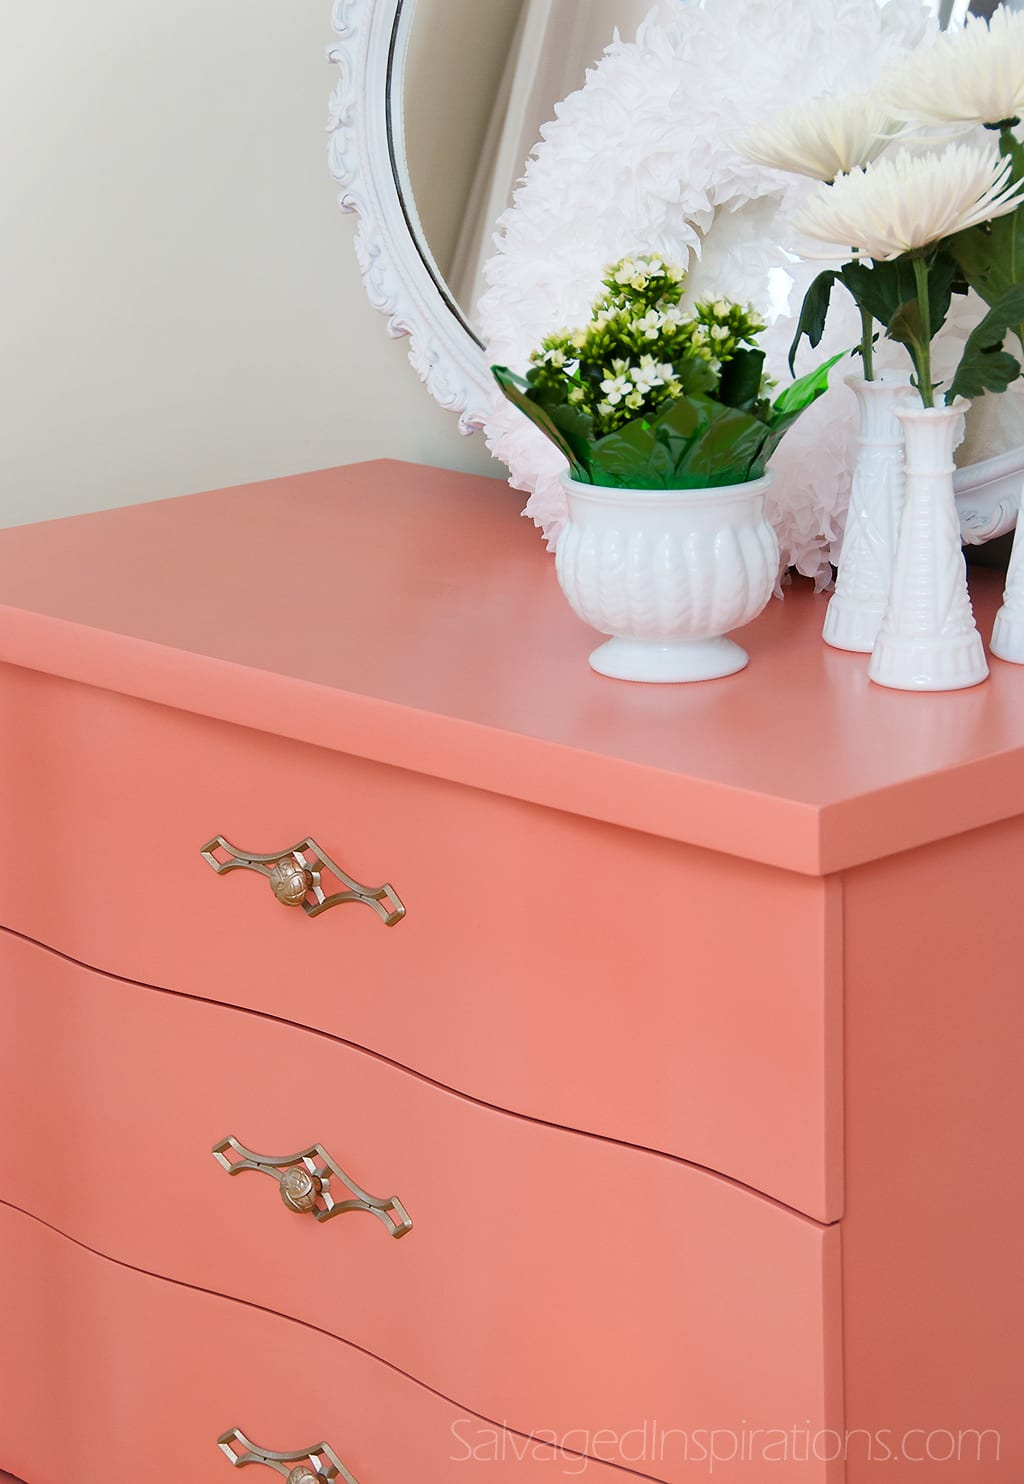 Dresser-Sherwin-Williams-Ravishing-Coral